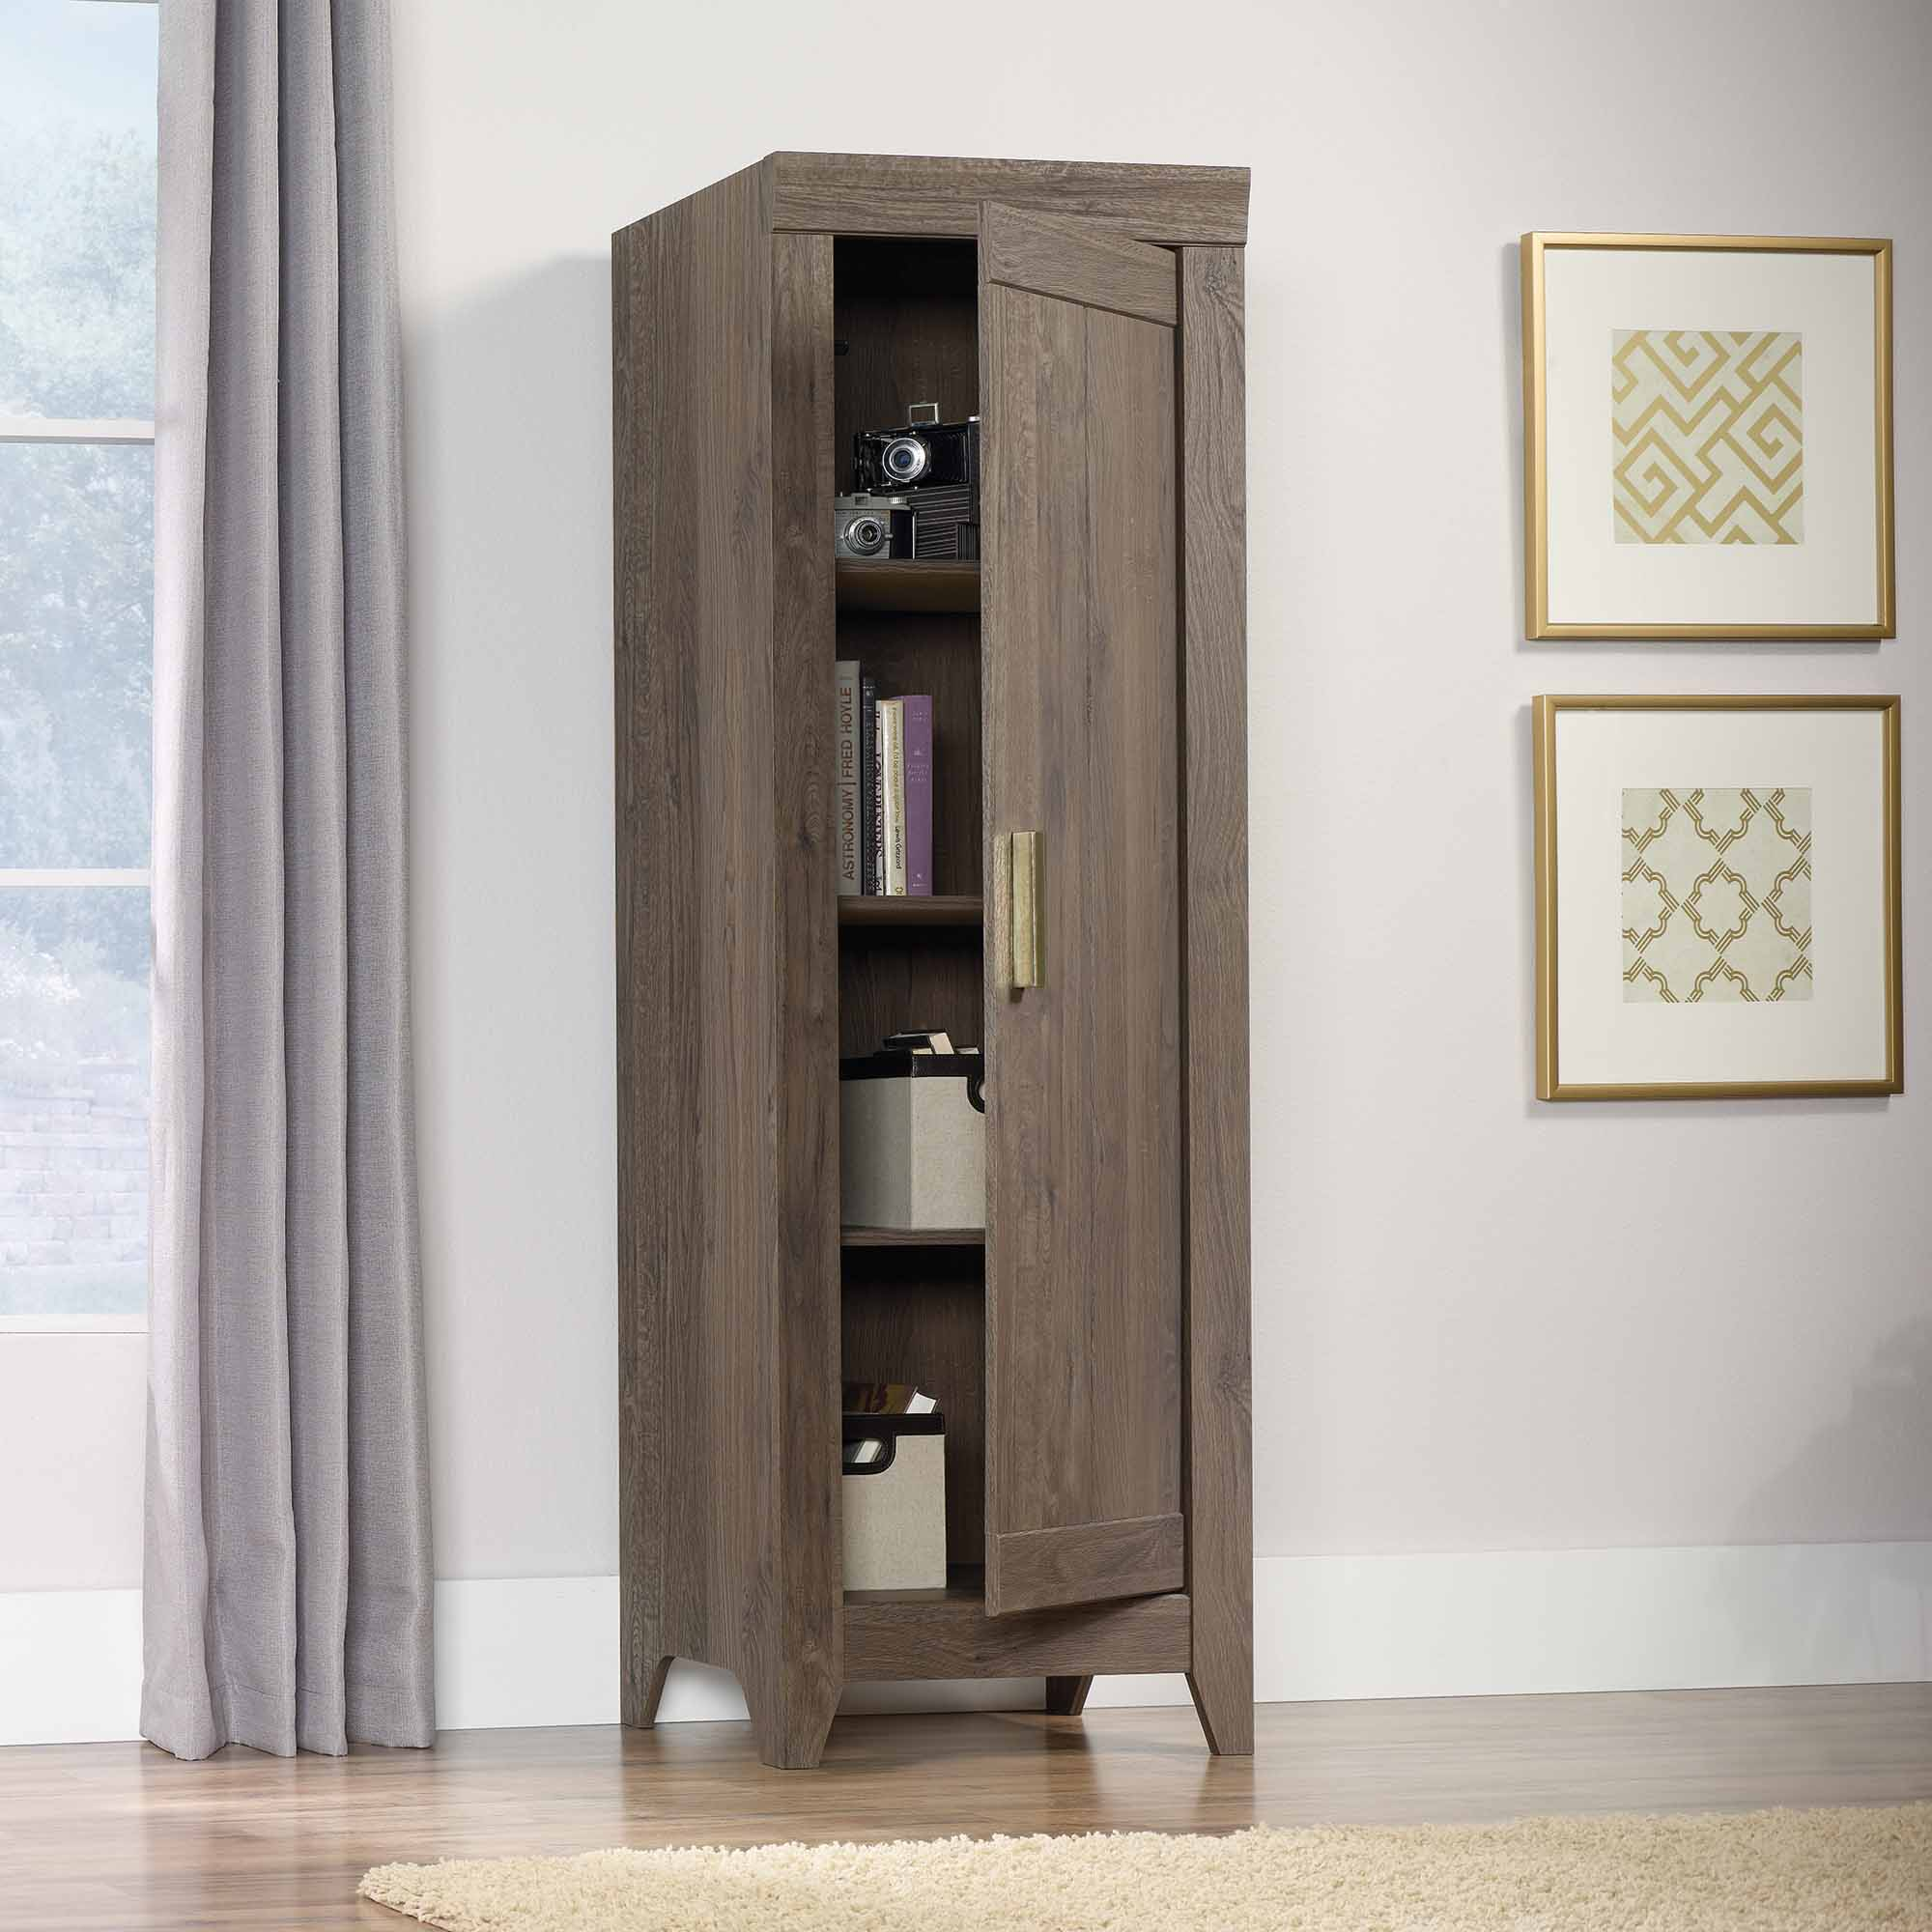 Sauder Kitchen Furniture Sauder Adept Storage Narrow Storage Cabinet Multiple Colors